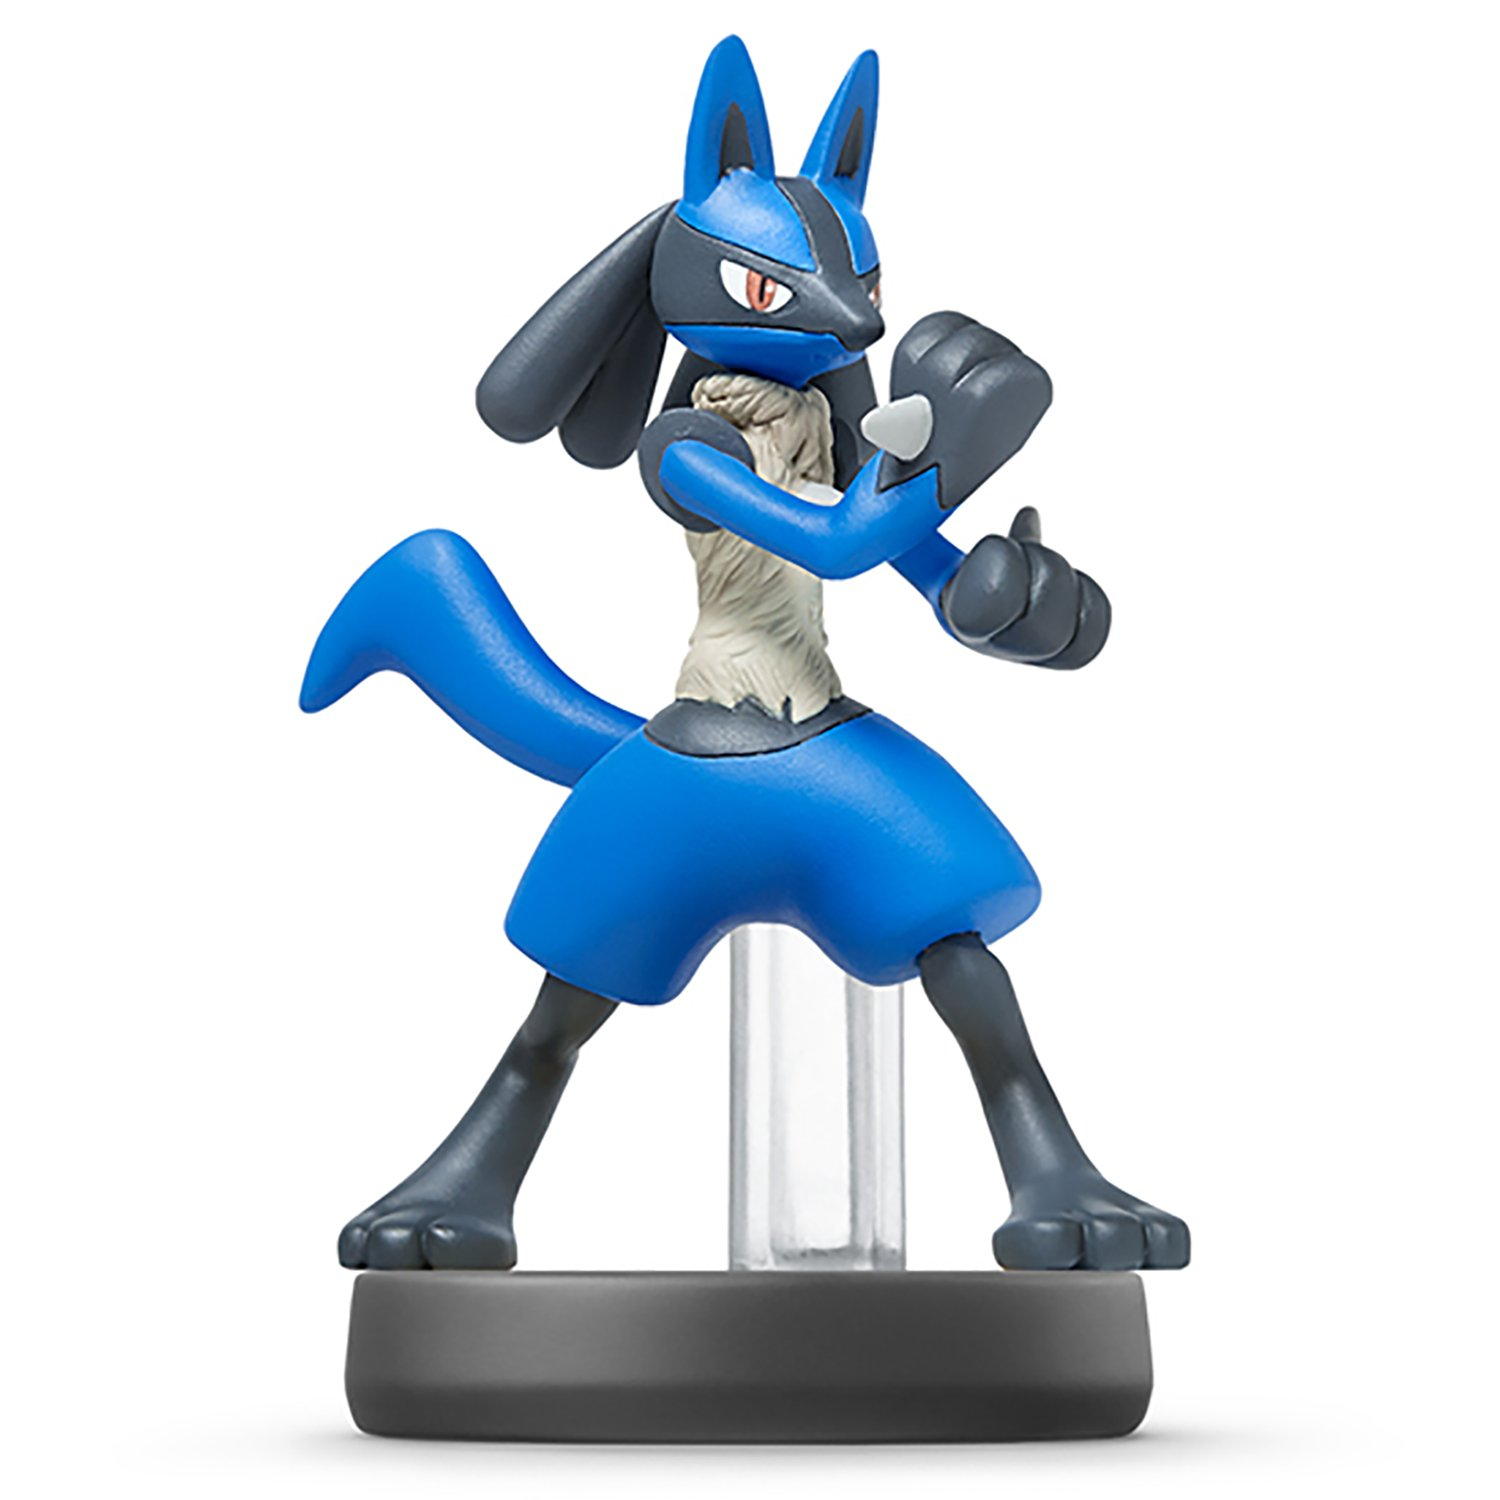 Lucario amiibo - Japan Import (Super Smash Bros Series) by Nintendo